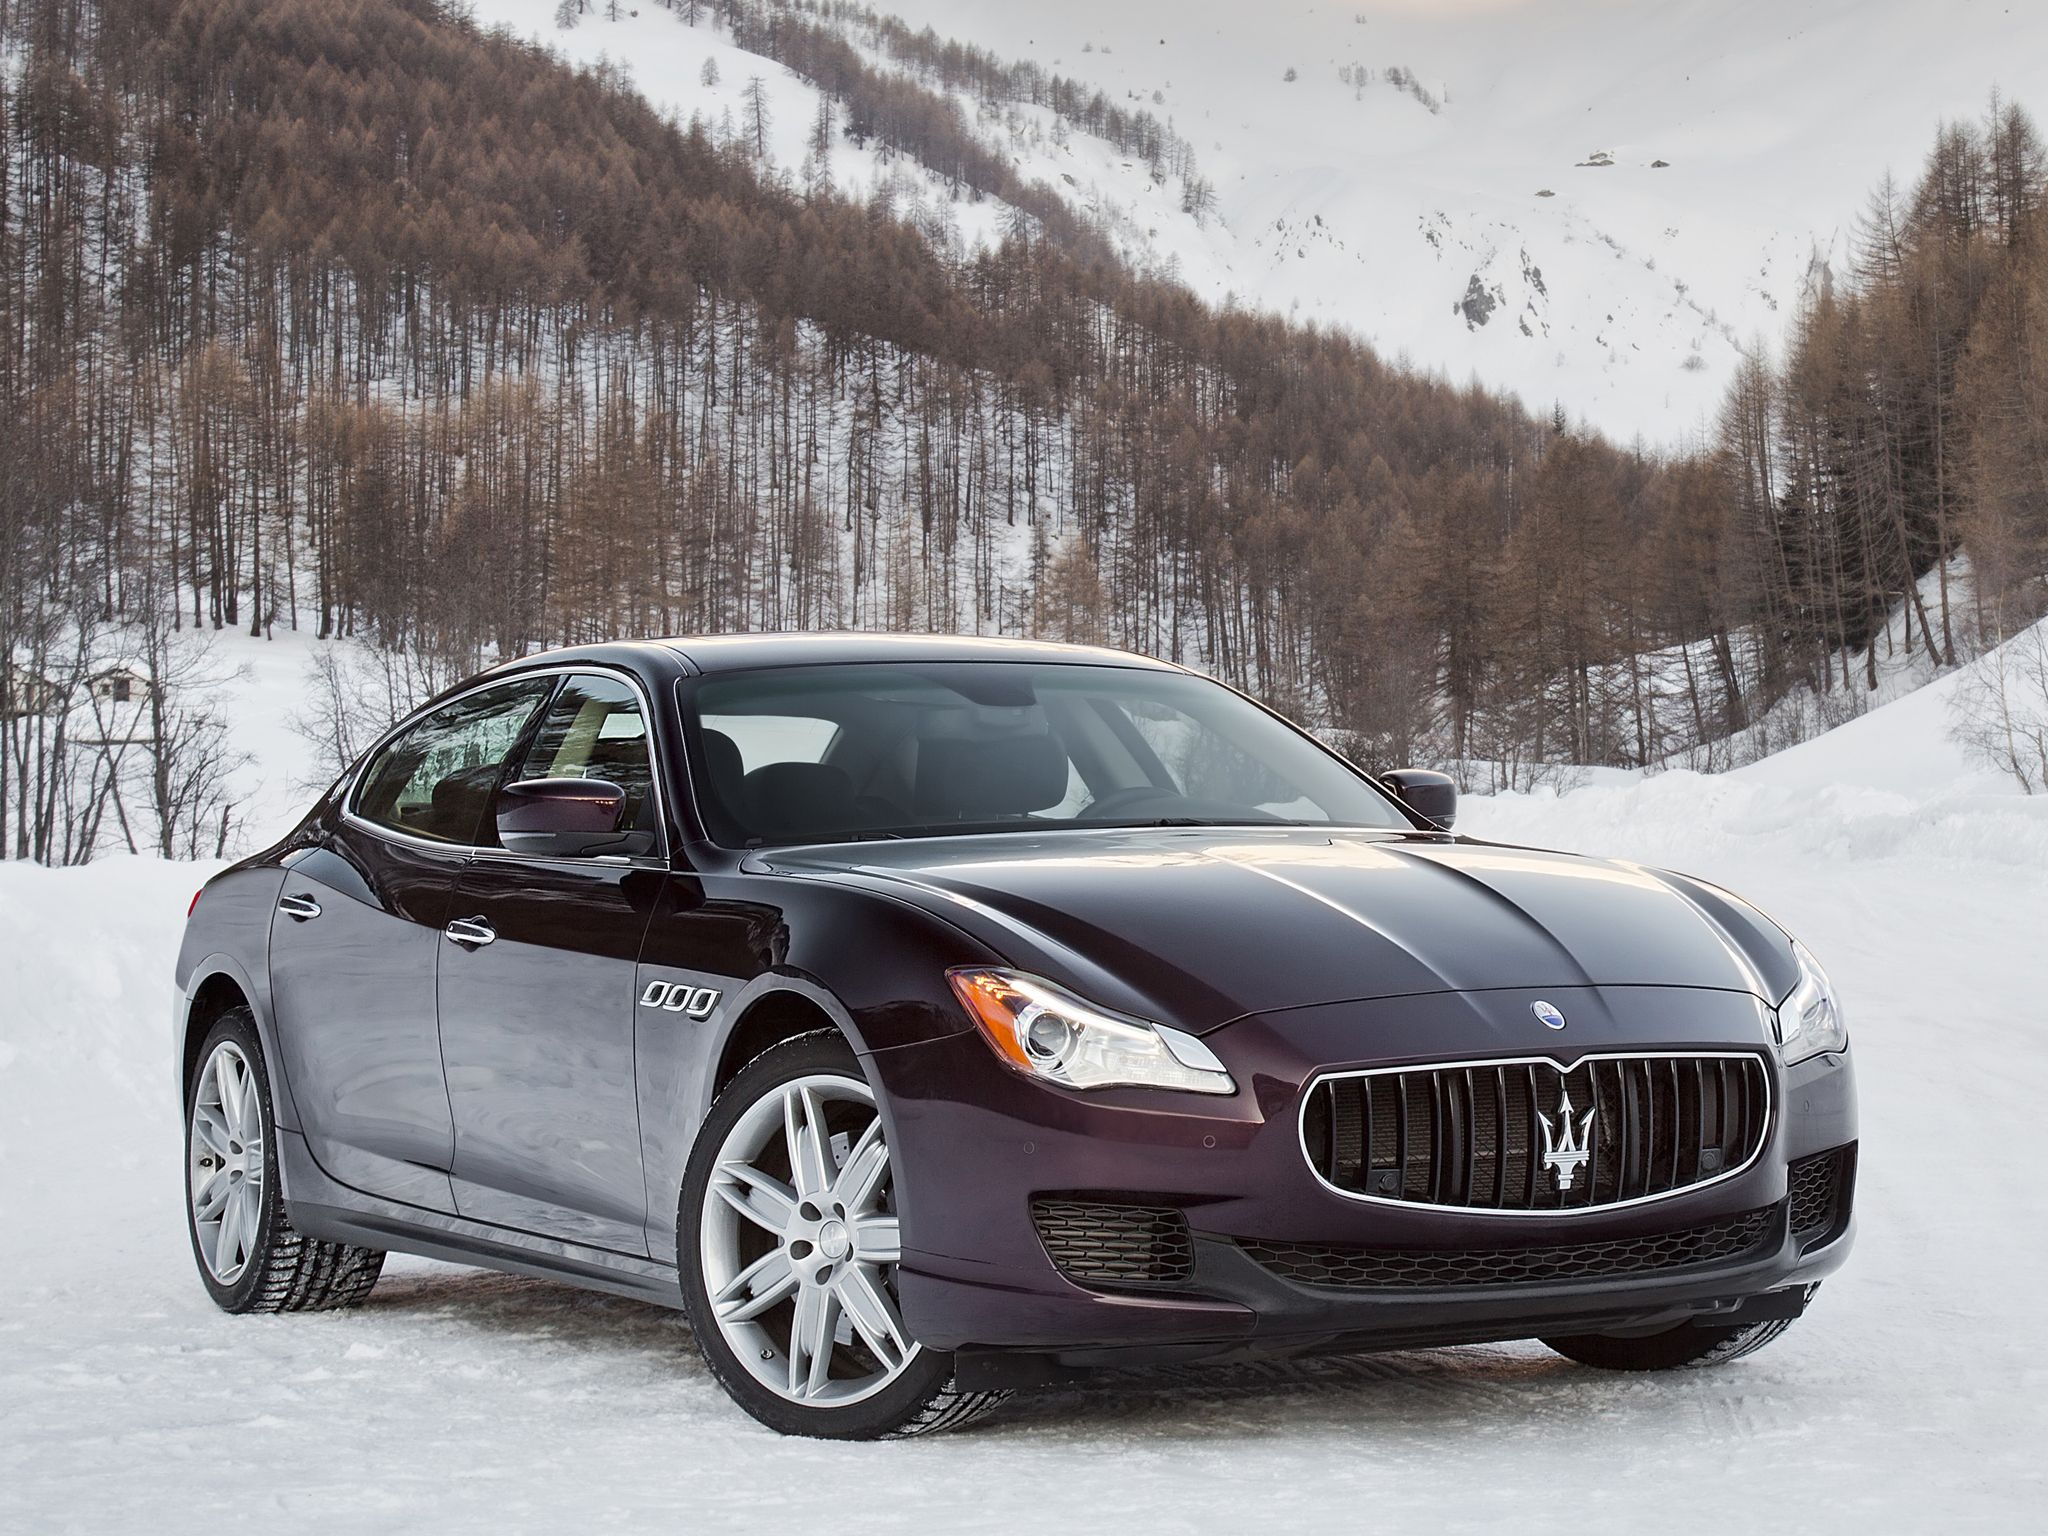 Interesting Info About Maserati 2007 with Amusing Images